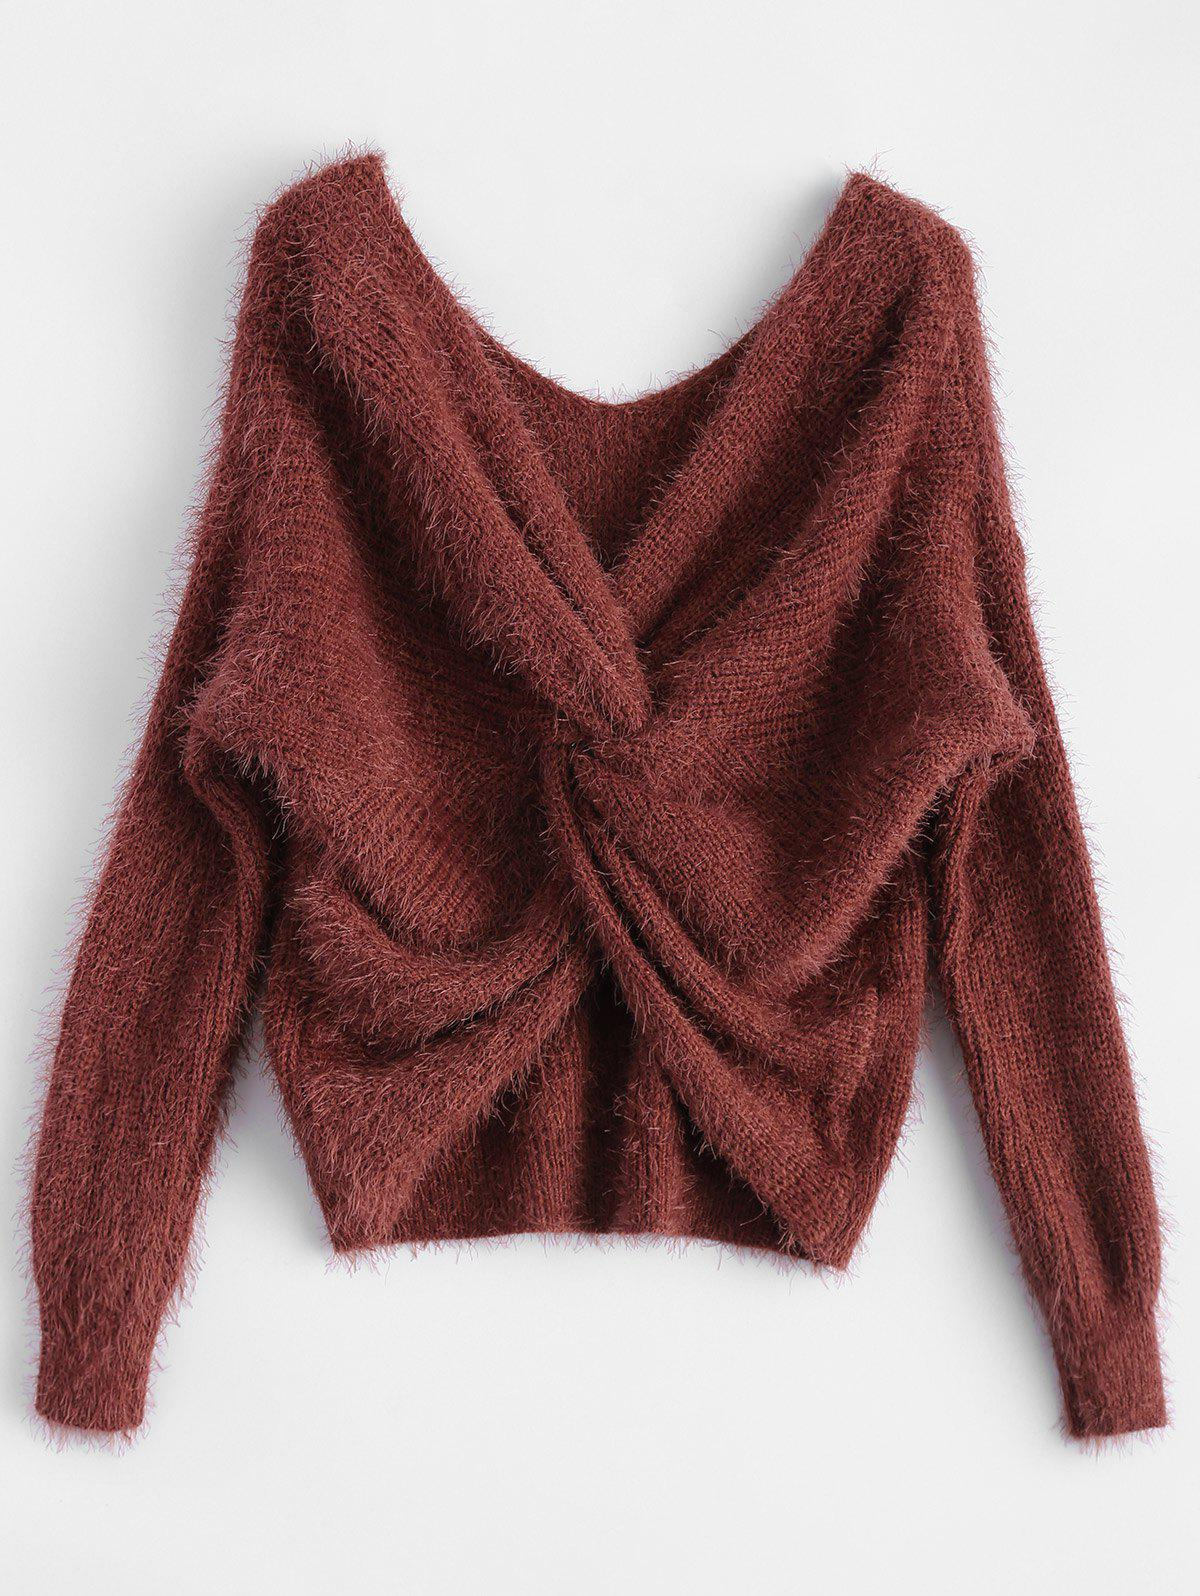 Twisted Back Chenille SweaterWOMEN<br><br>Size: ONE SIZE; Color: CLARET; Type: Pullovers; Material: Acrylic,Cotton,Polyester; Sleeve Length: Full; Collar: V-Neck; Style: Fashion; Pattern Type: Solid; Season: Fall,Spring,Winter; Weight: 0.4700kg; Package Contents: 1 x Sweater;